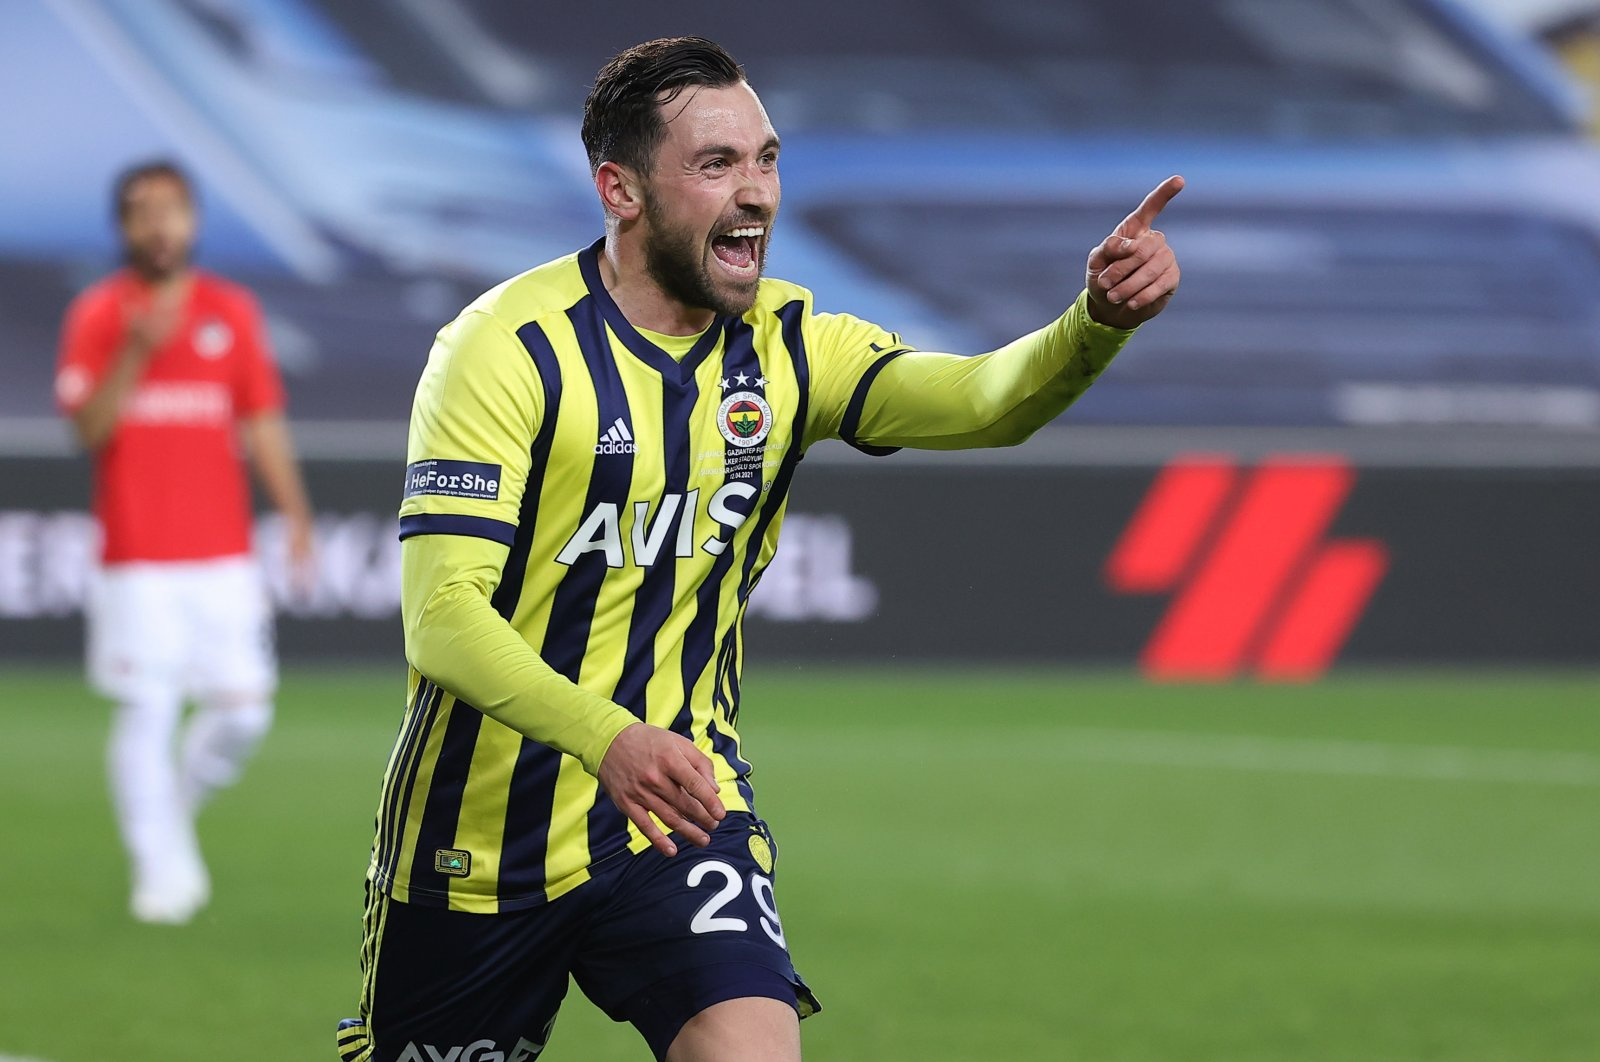 Fenerbahçe's Sinan Gümüş celebrates during his team's win over Gaziantep FK in the 34th week of the Turkish Süper Lig, at Ülker Stadium, Istanbul, Turkey, April 12, 2021. (AA Photo)